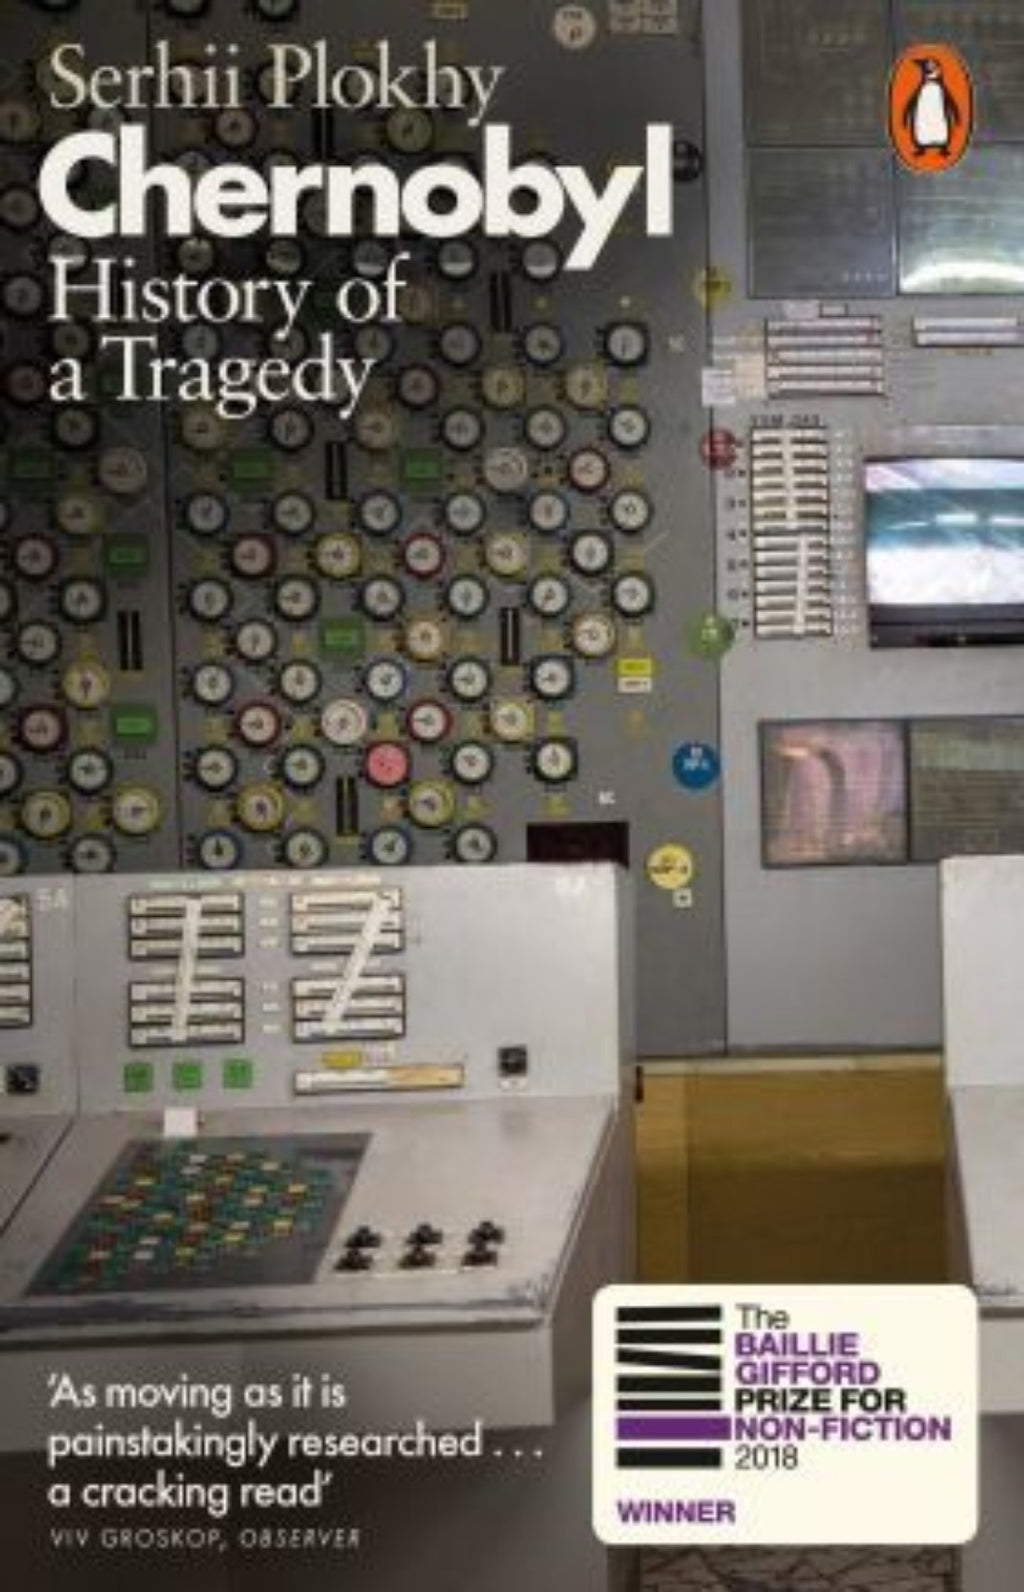 Chernobyl : History of a Tragedy